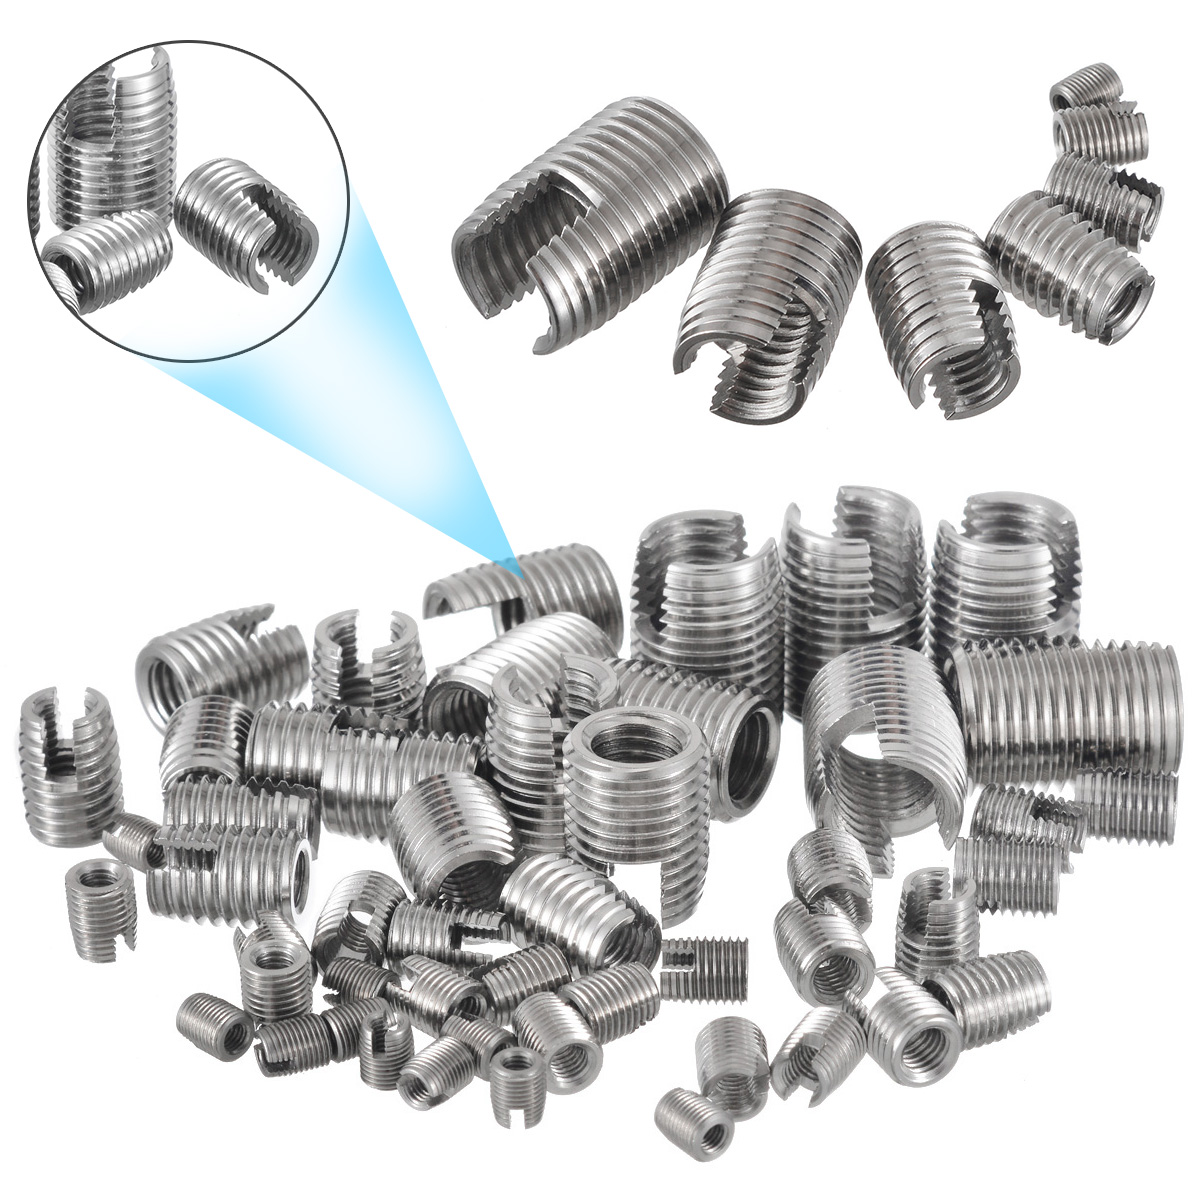 50pcs/set Silver Stainless Steel Thread Repair Insert Kit M3 M4 M5 M6 M8 M10 M12  Helical Insert Self Tapping Slotted Screw